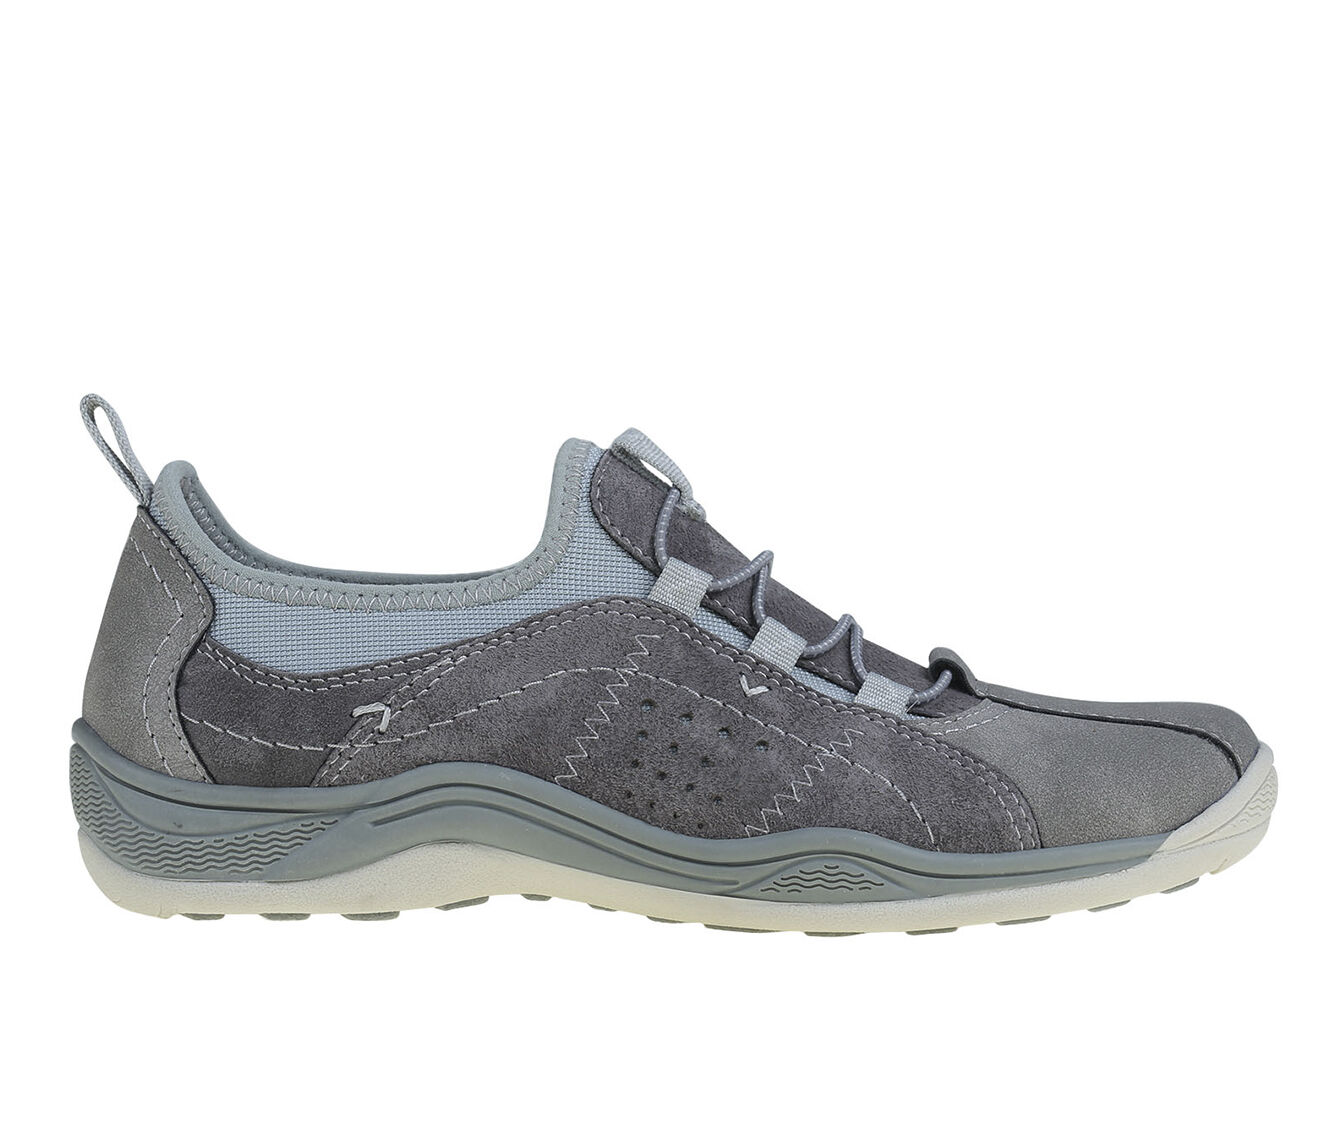 Women's Earth Origins Clara Cora Charcoal Grey